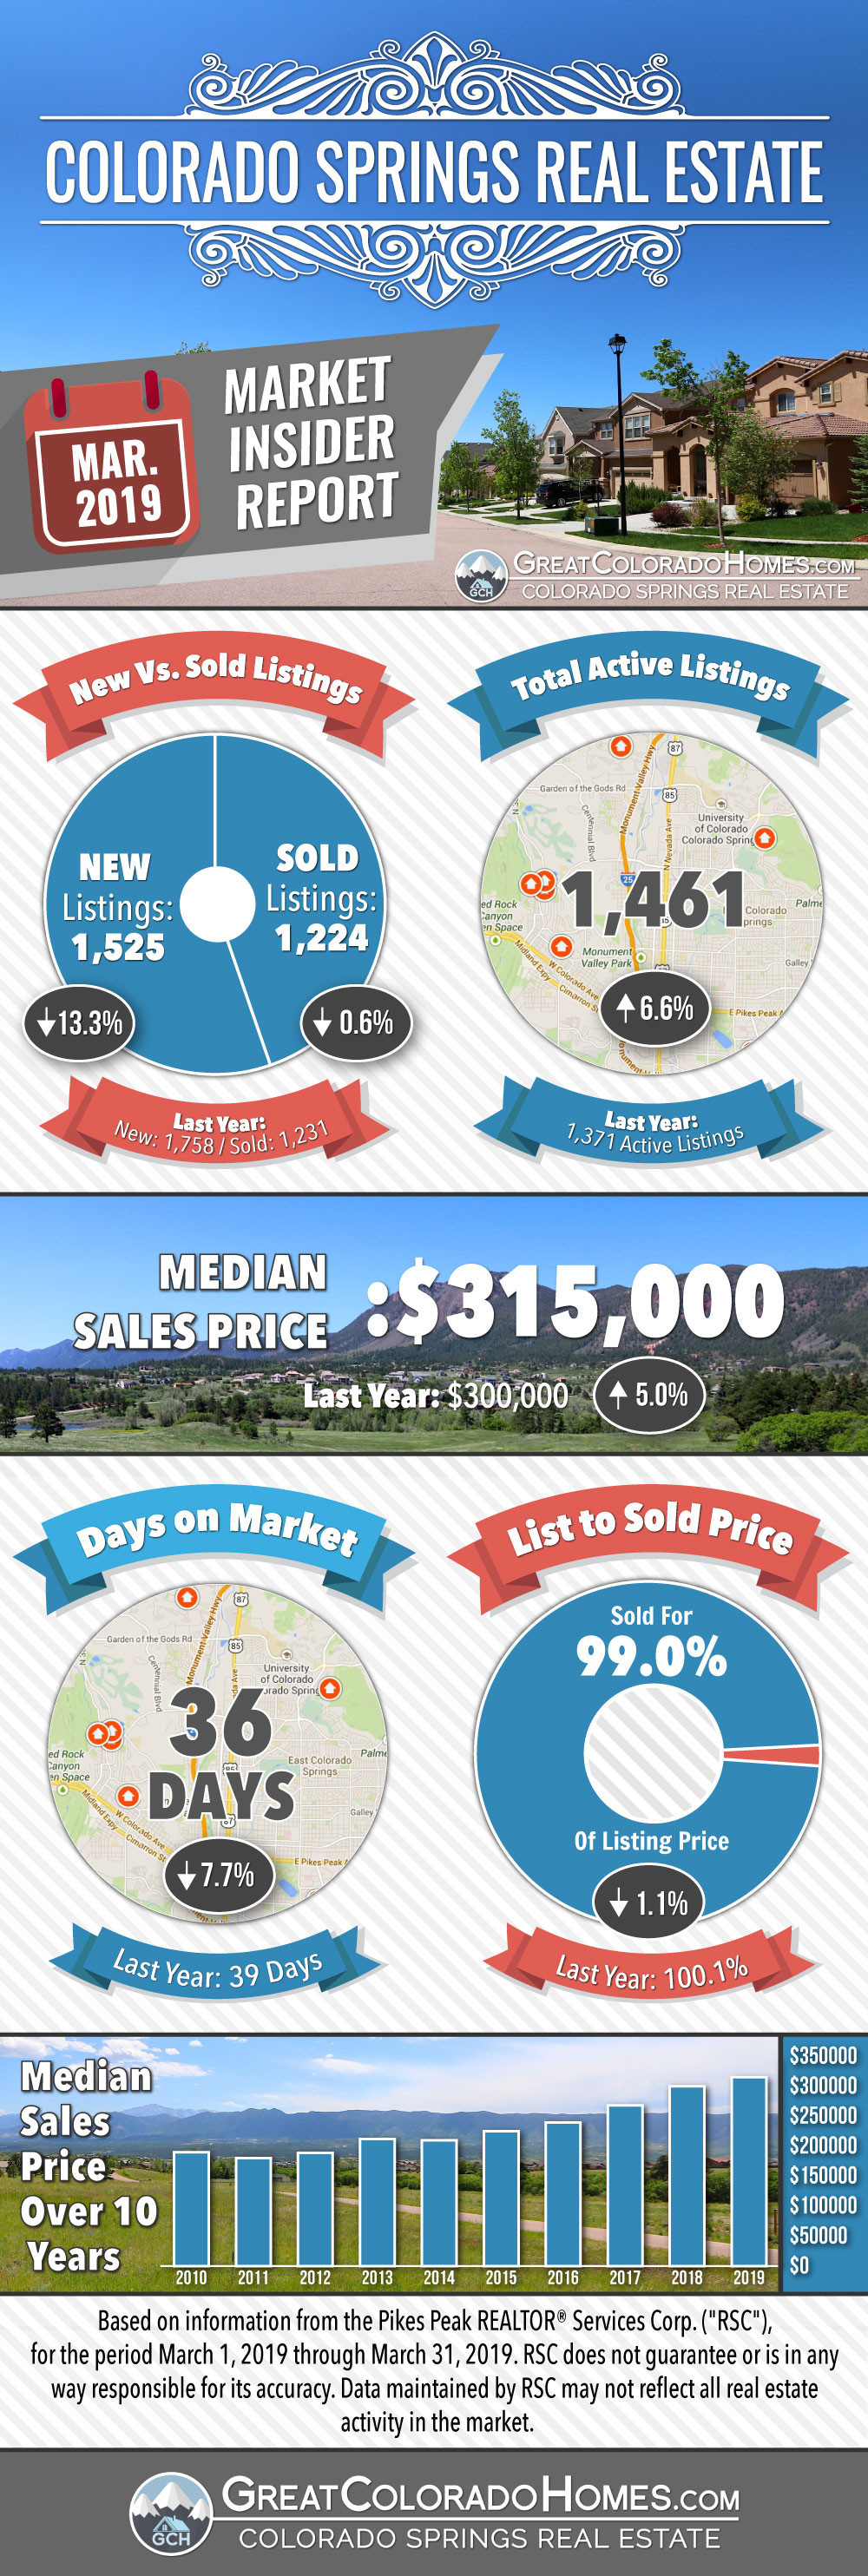 March 2019 Colorado Springs Real Estate Market Statistics Infographic